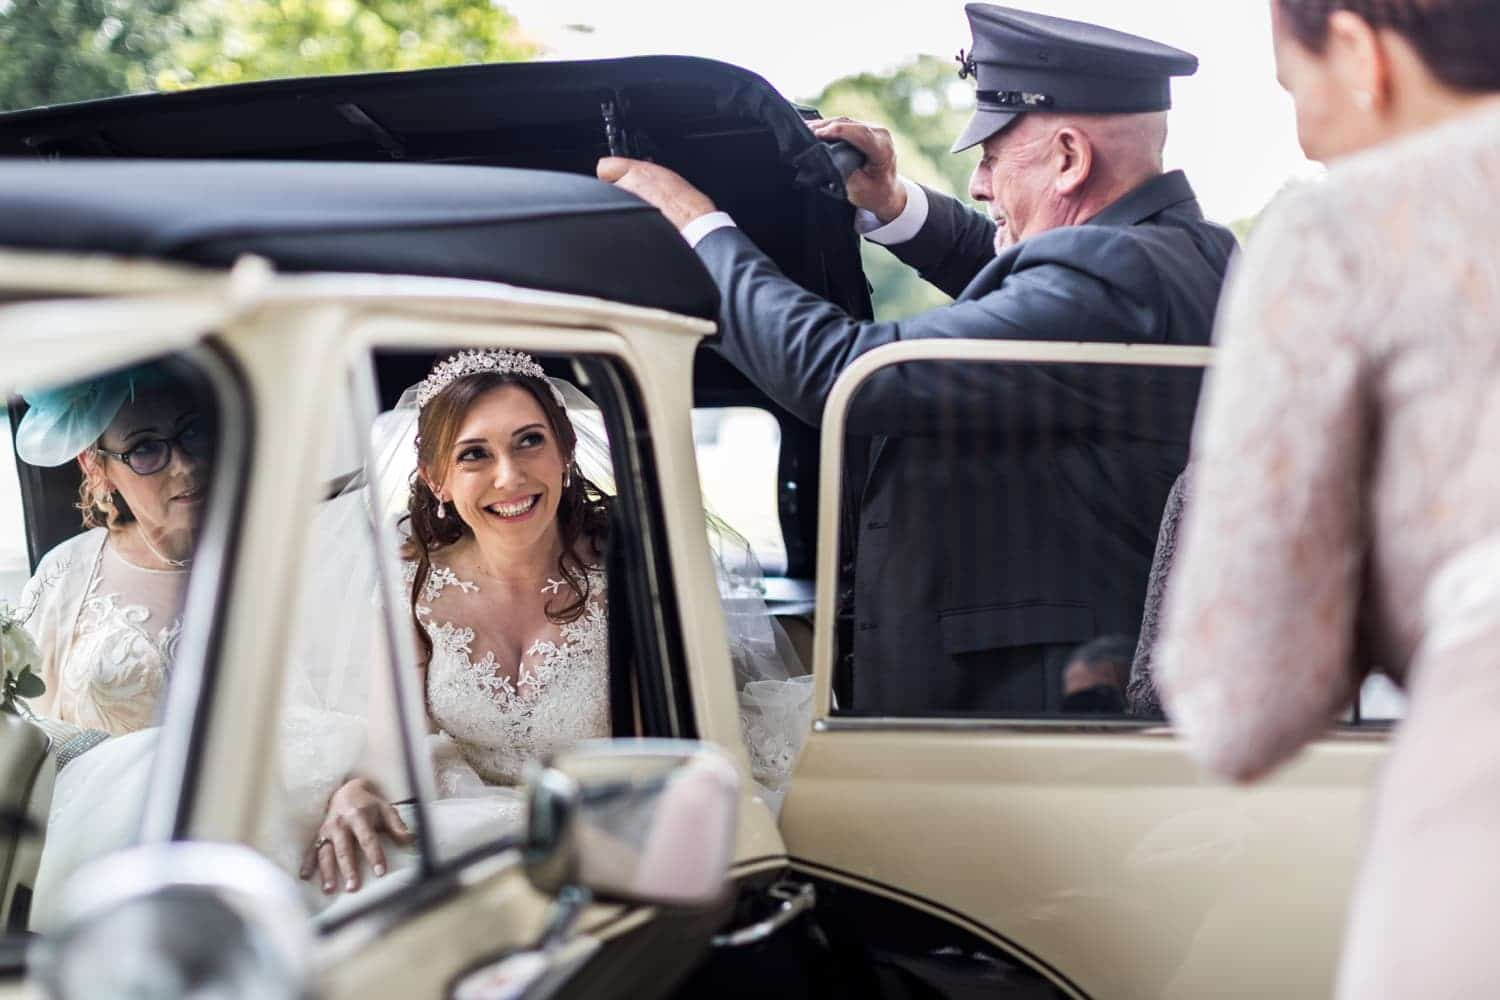 Bride arrives in car for wedding at The Royal Welsh College of Music and Drama